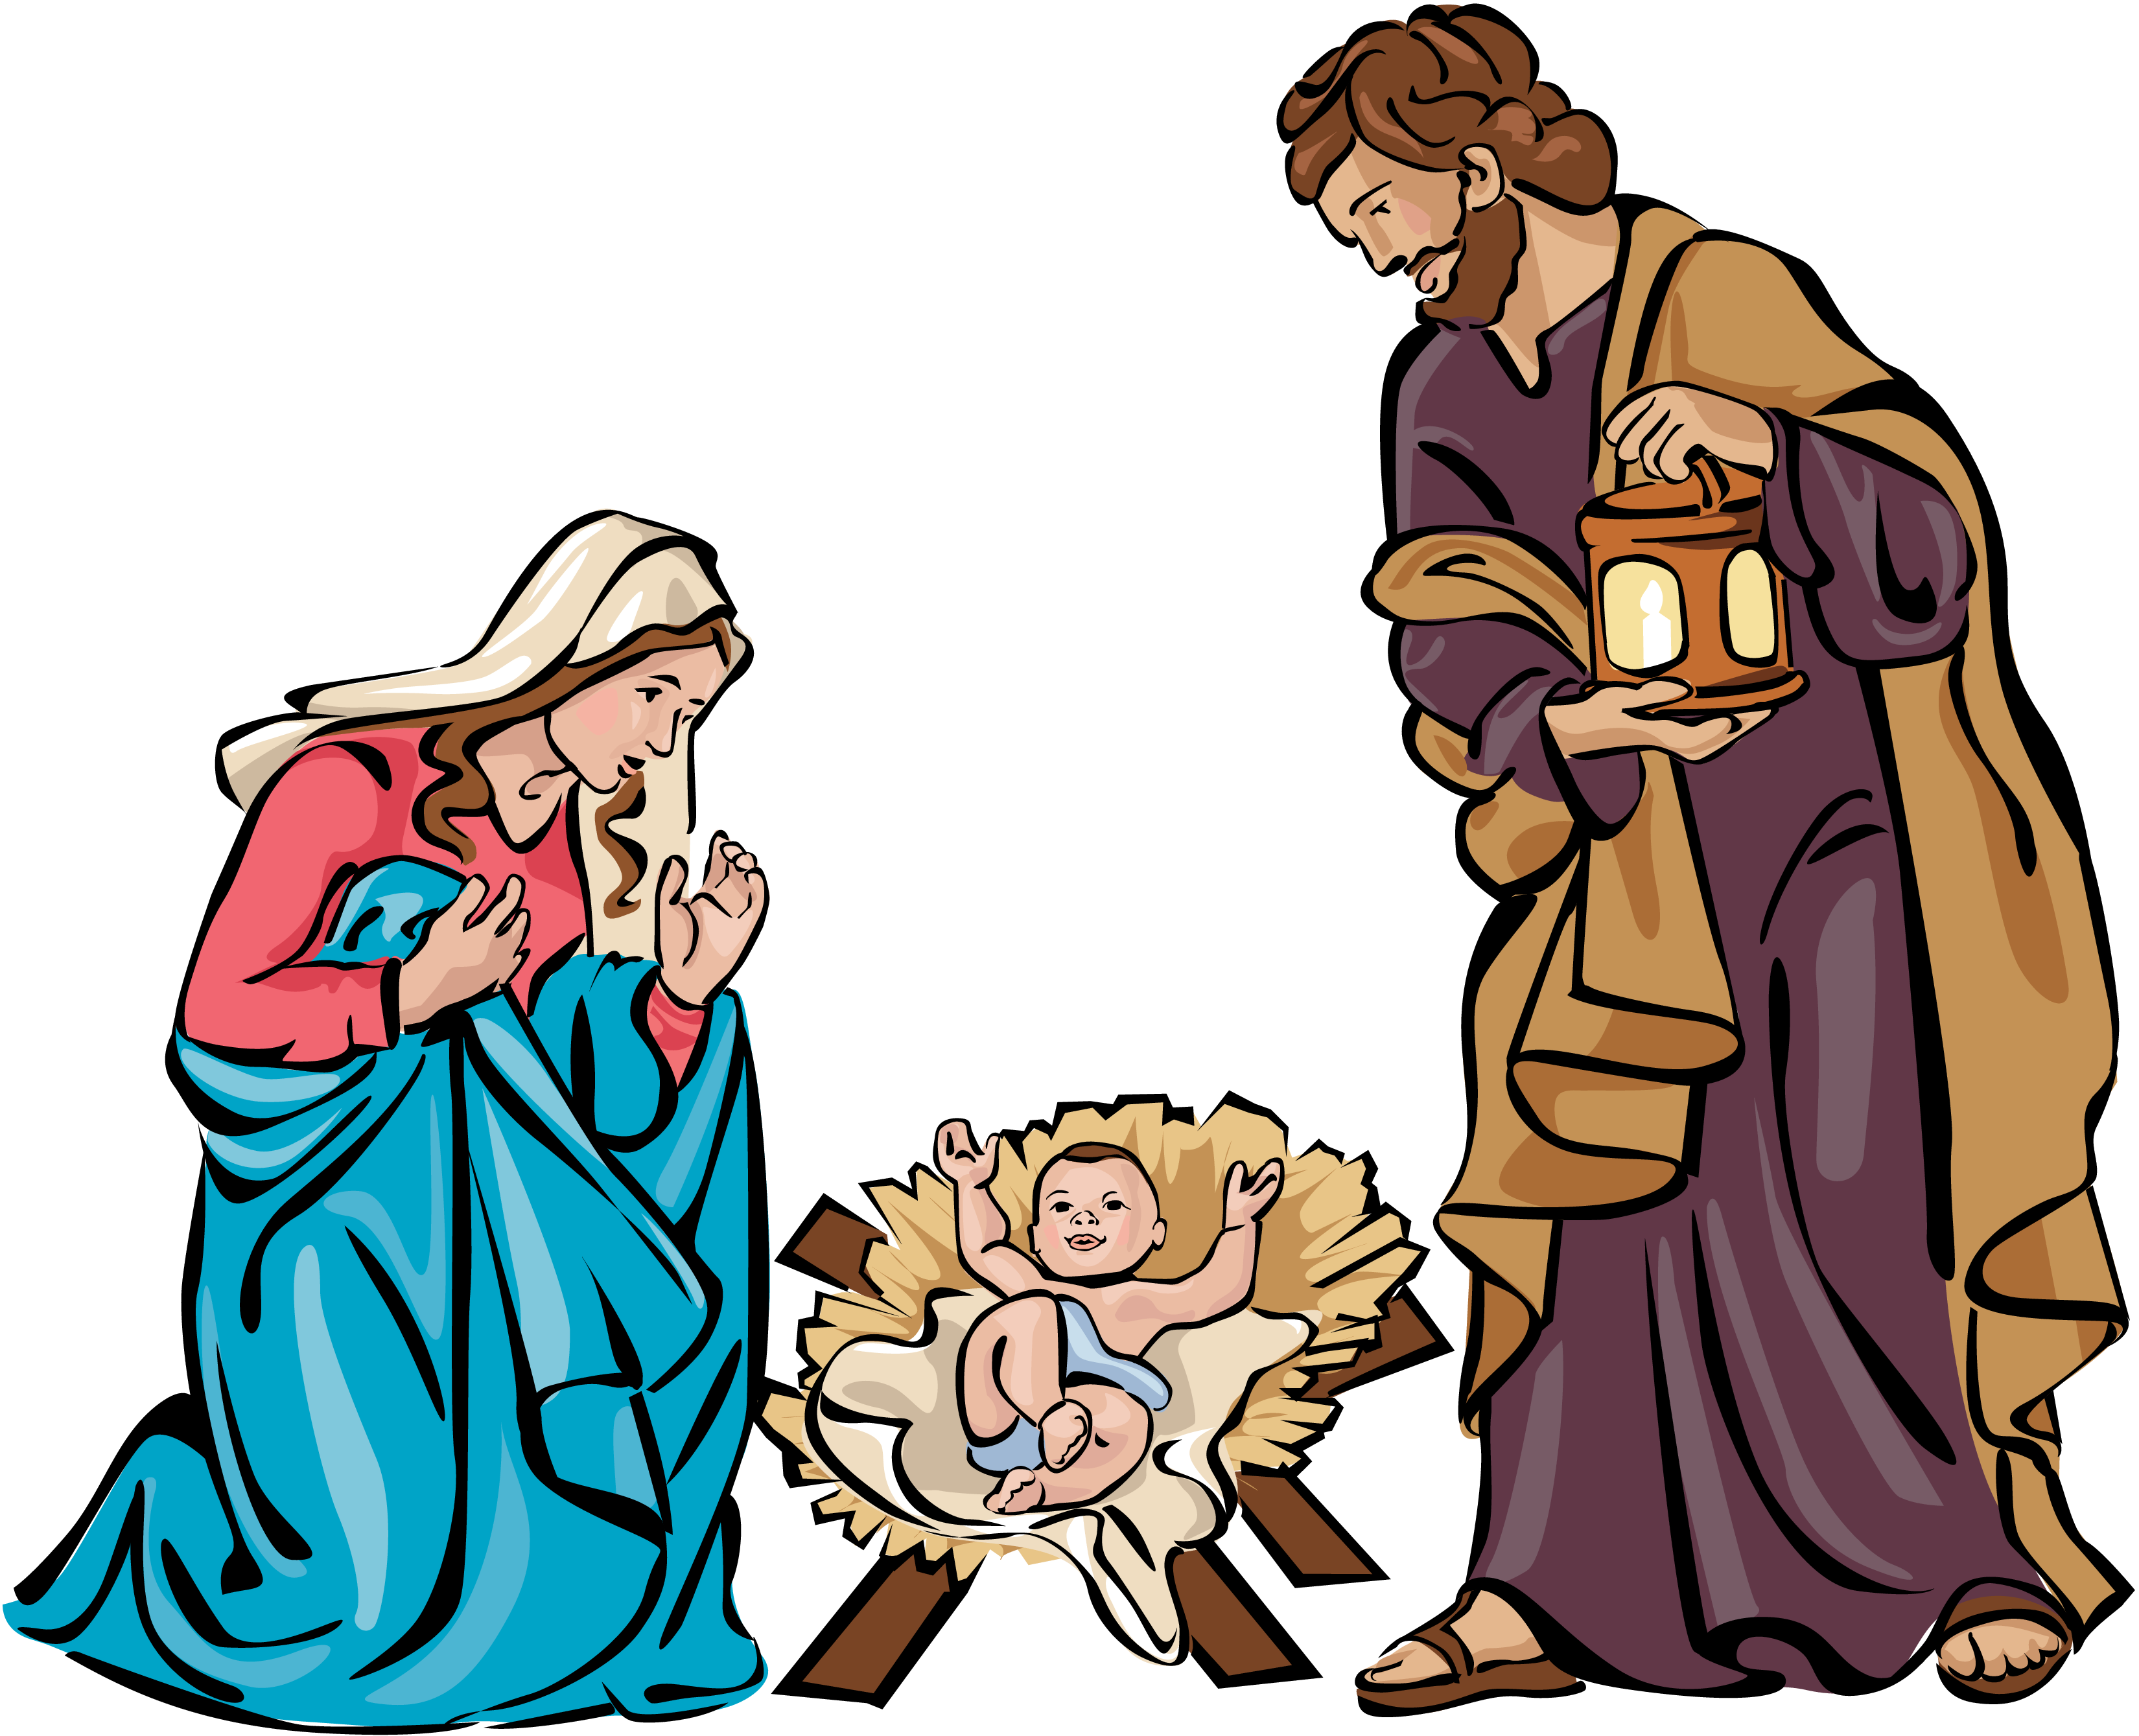 Christmas clipart jesus clip art royalty free download Jesus The Good Shepherd Clipart at GetDrawings.com | Free for ... clip art royalty free download